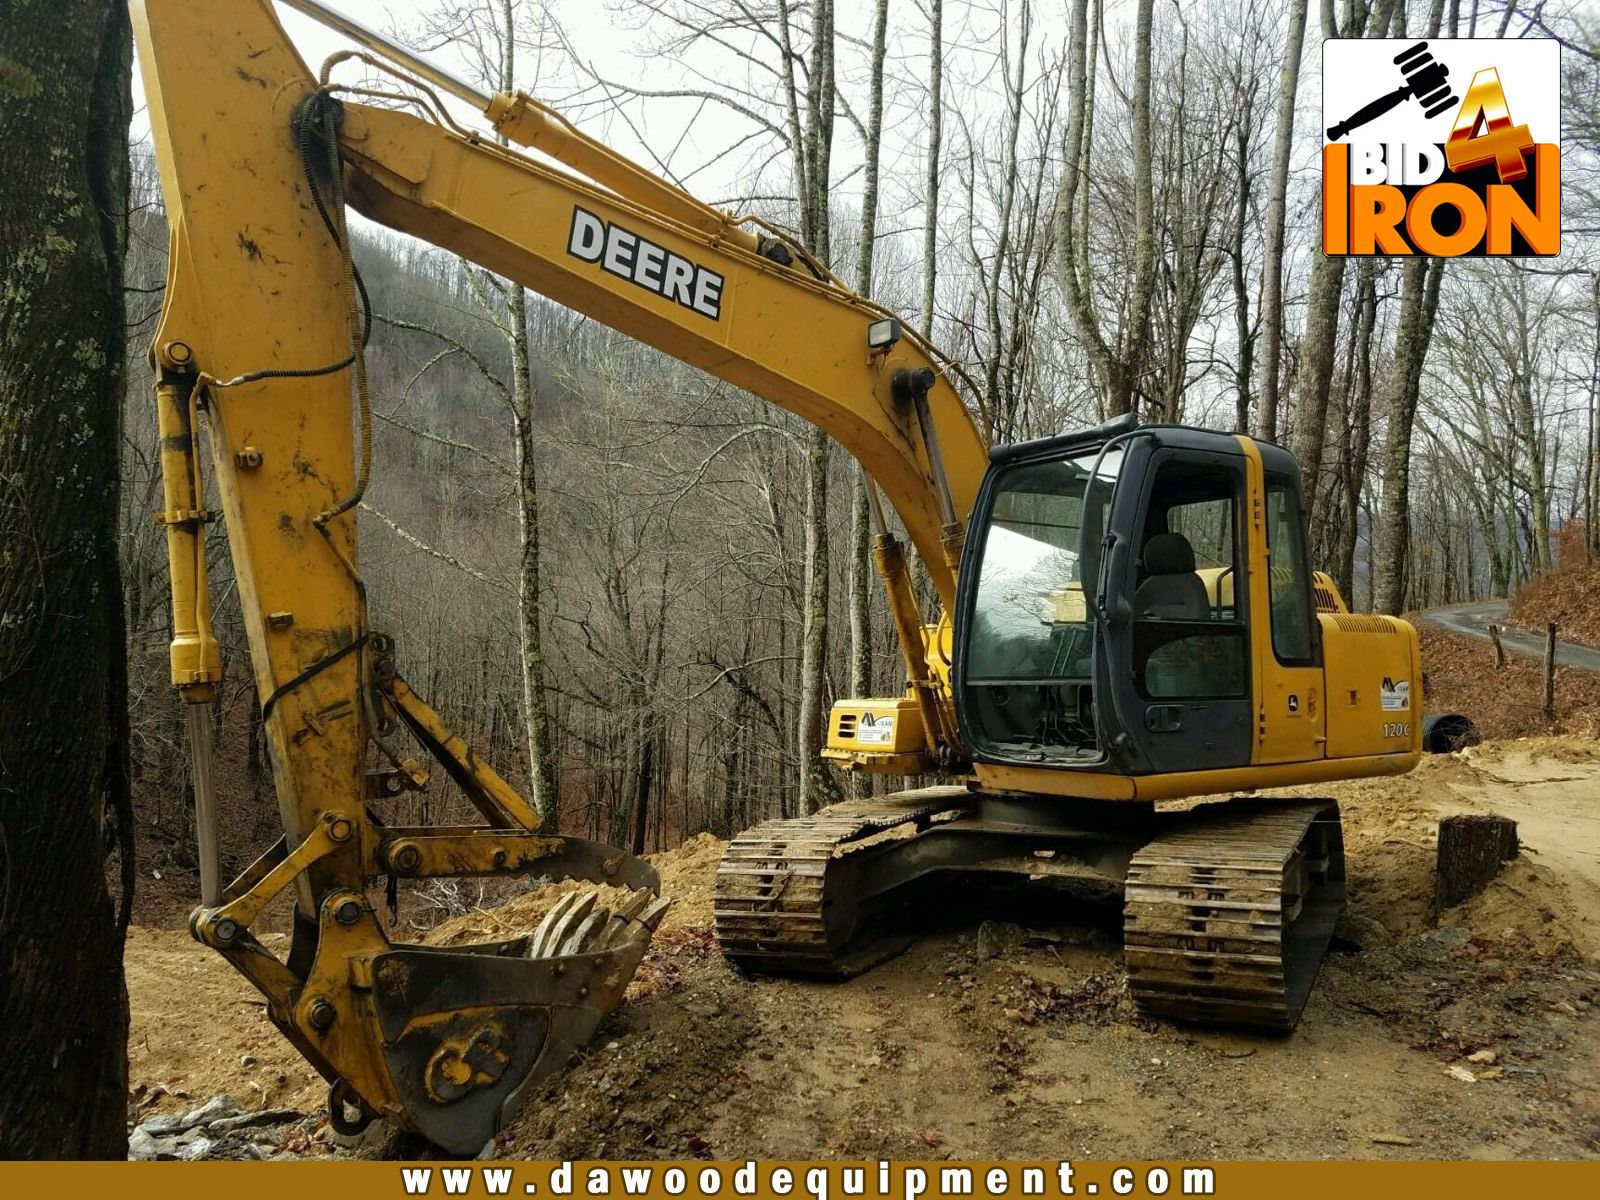 Year 2005 manufacturer john deer model 120c price call location year 2005 manufacturer john deer model 120c price call location tennessee condition used stock number hours sciox Image collections